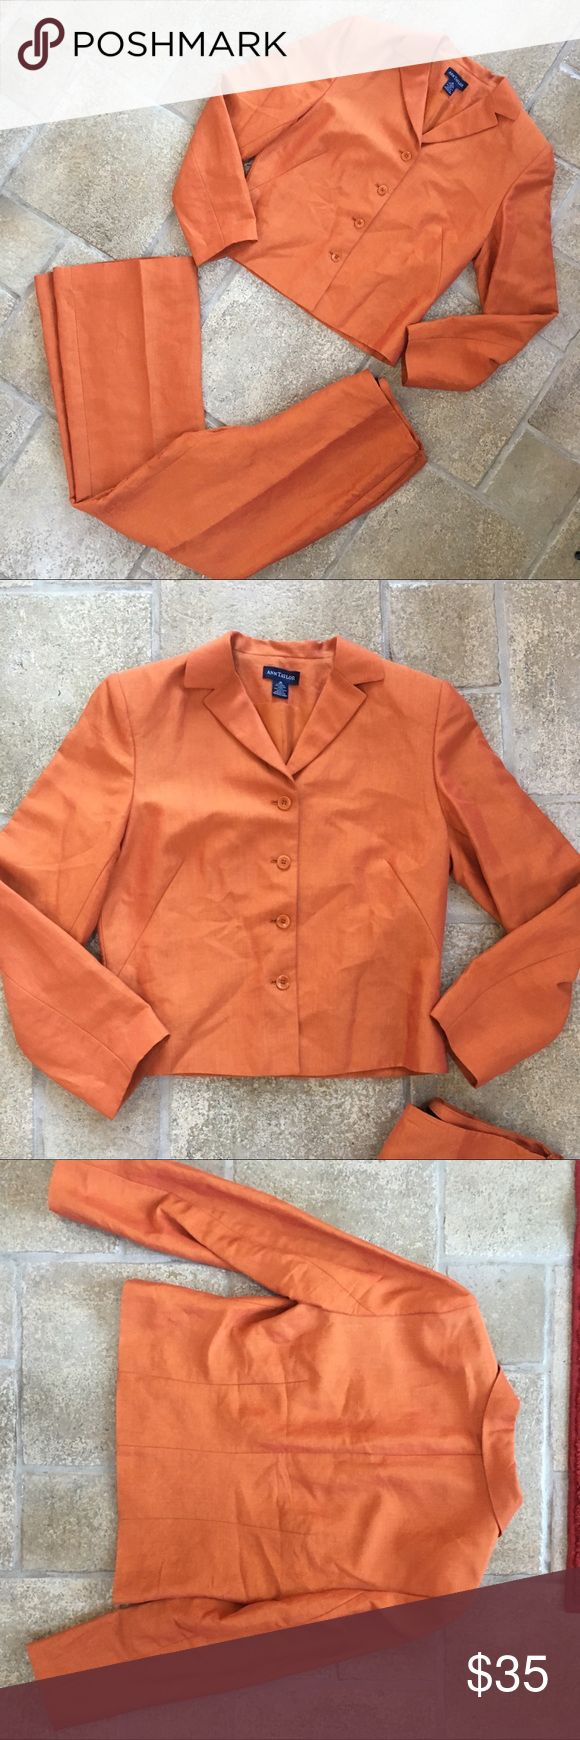 Ann Taylor Orange Suit 2-Piece Ann Taylor orange two piece suit  both size 10 Worn twice still in perfect condition  Make an offer! Ann Taylor Jackets & Coats Blazers